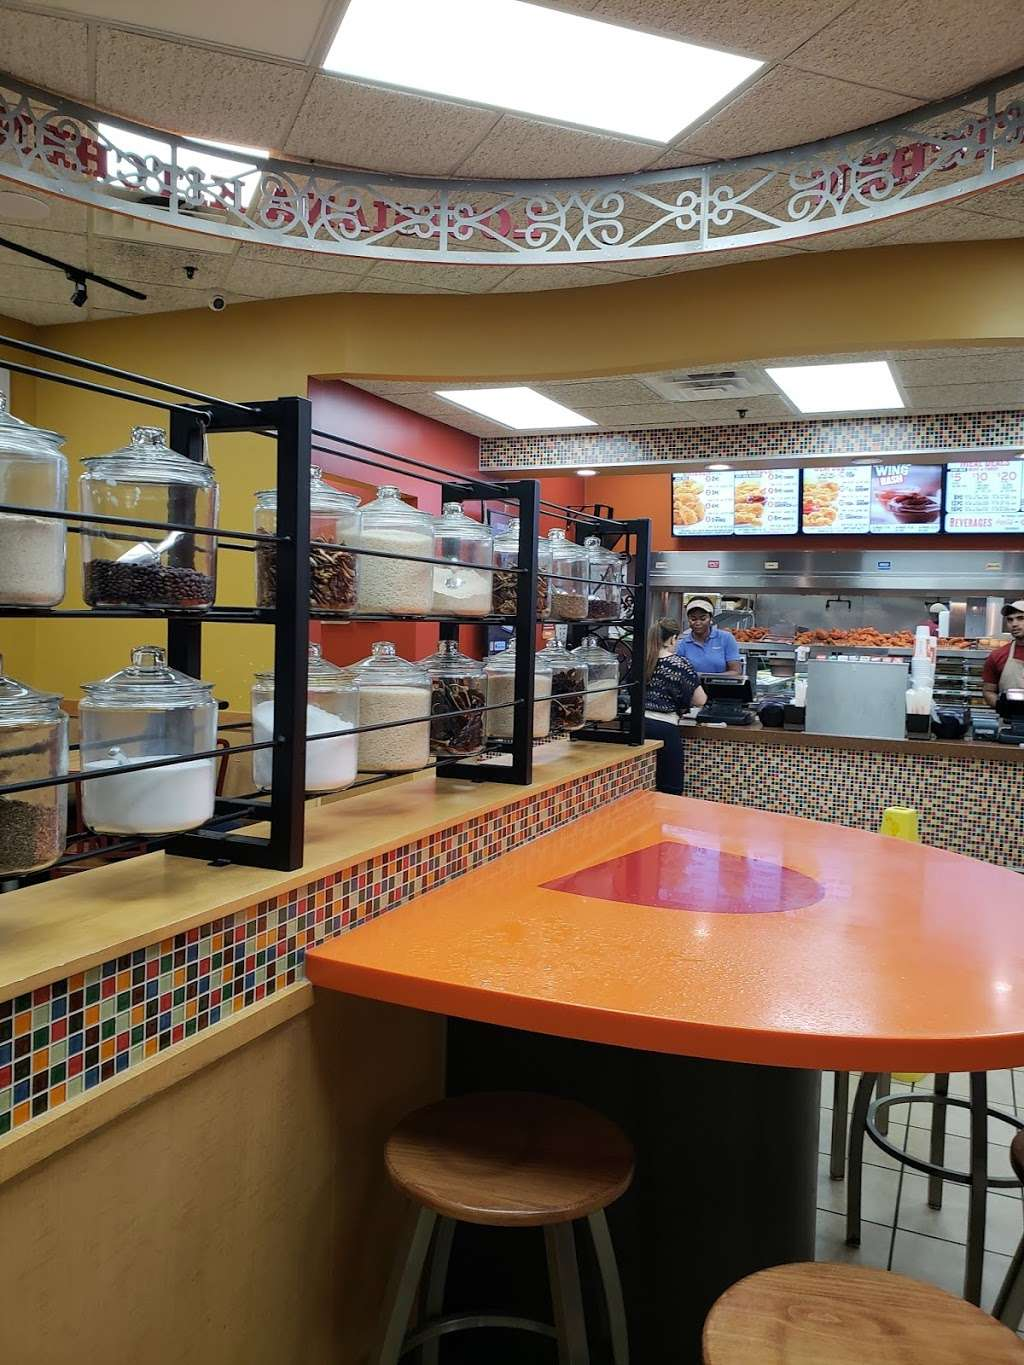 Popeyes Louisiana Kitchen - restaurant  | Photo 5 of 10 | Address: 221 W Merrick Rd, Valley Stream, NY 11580, USA | Phone: (516) 599-2506